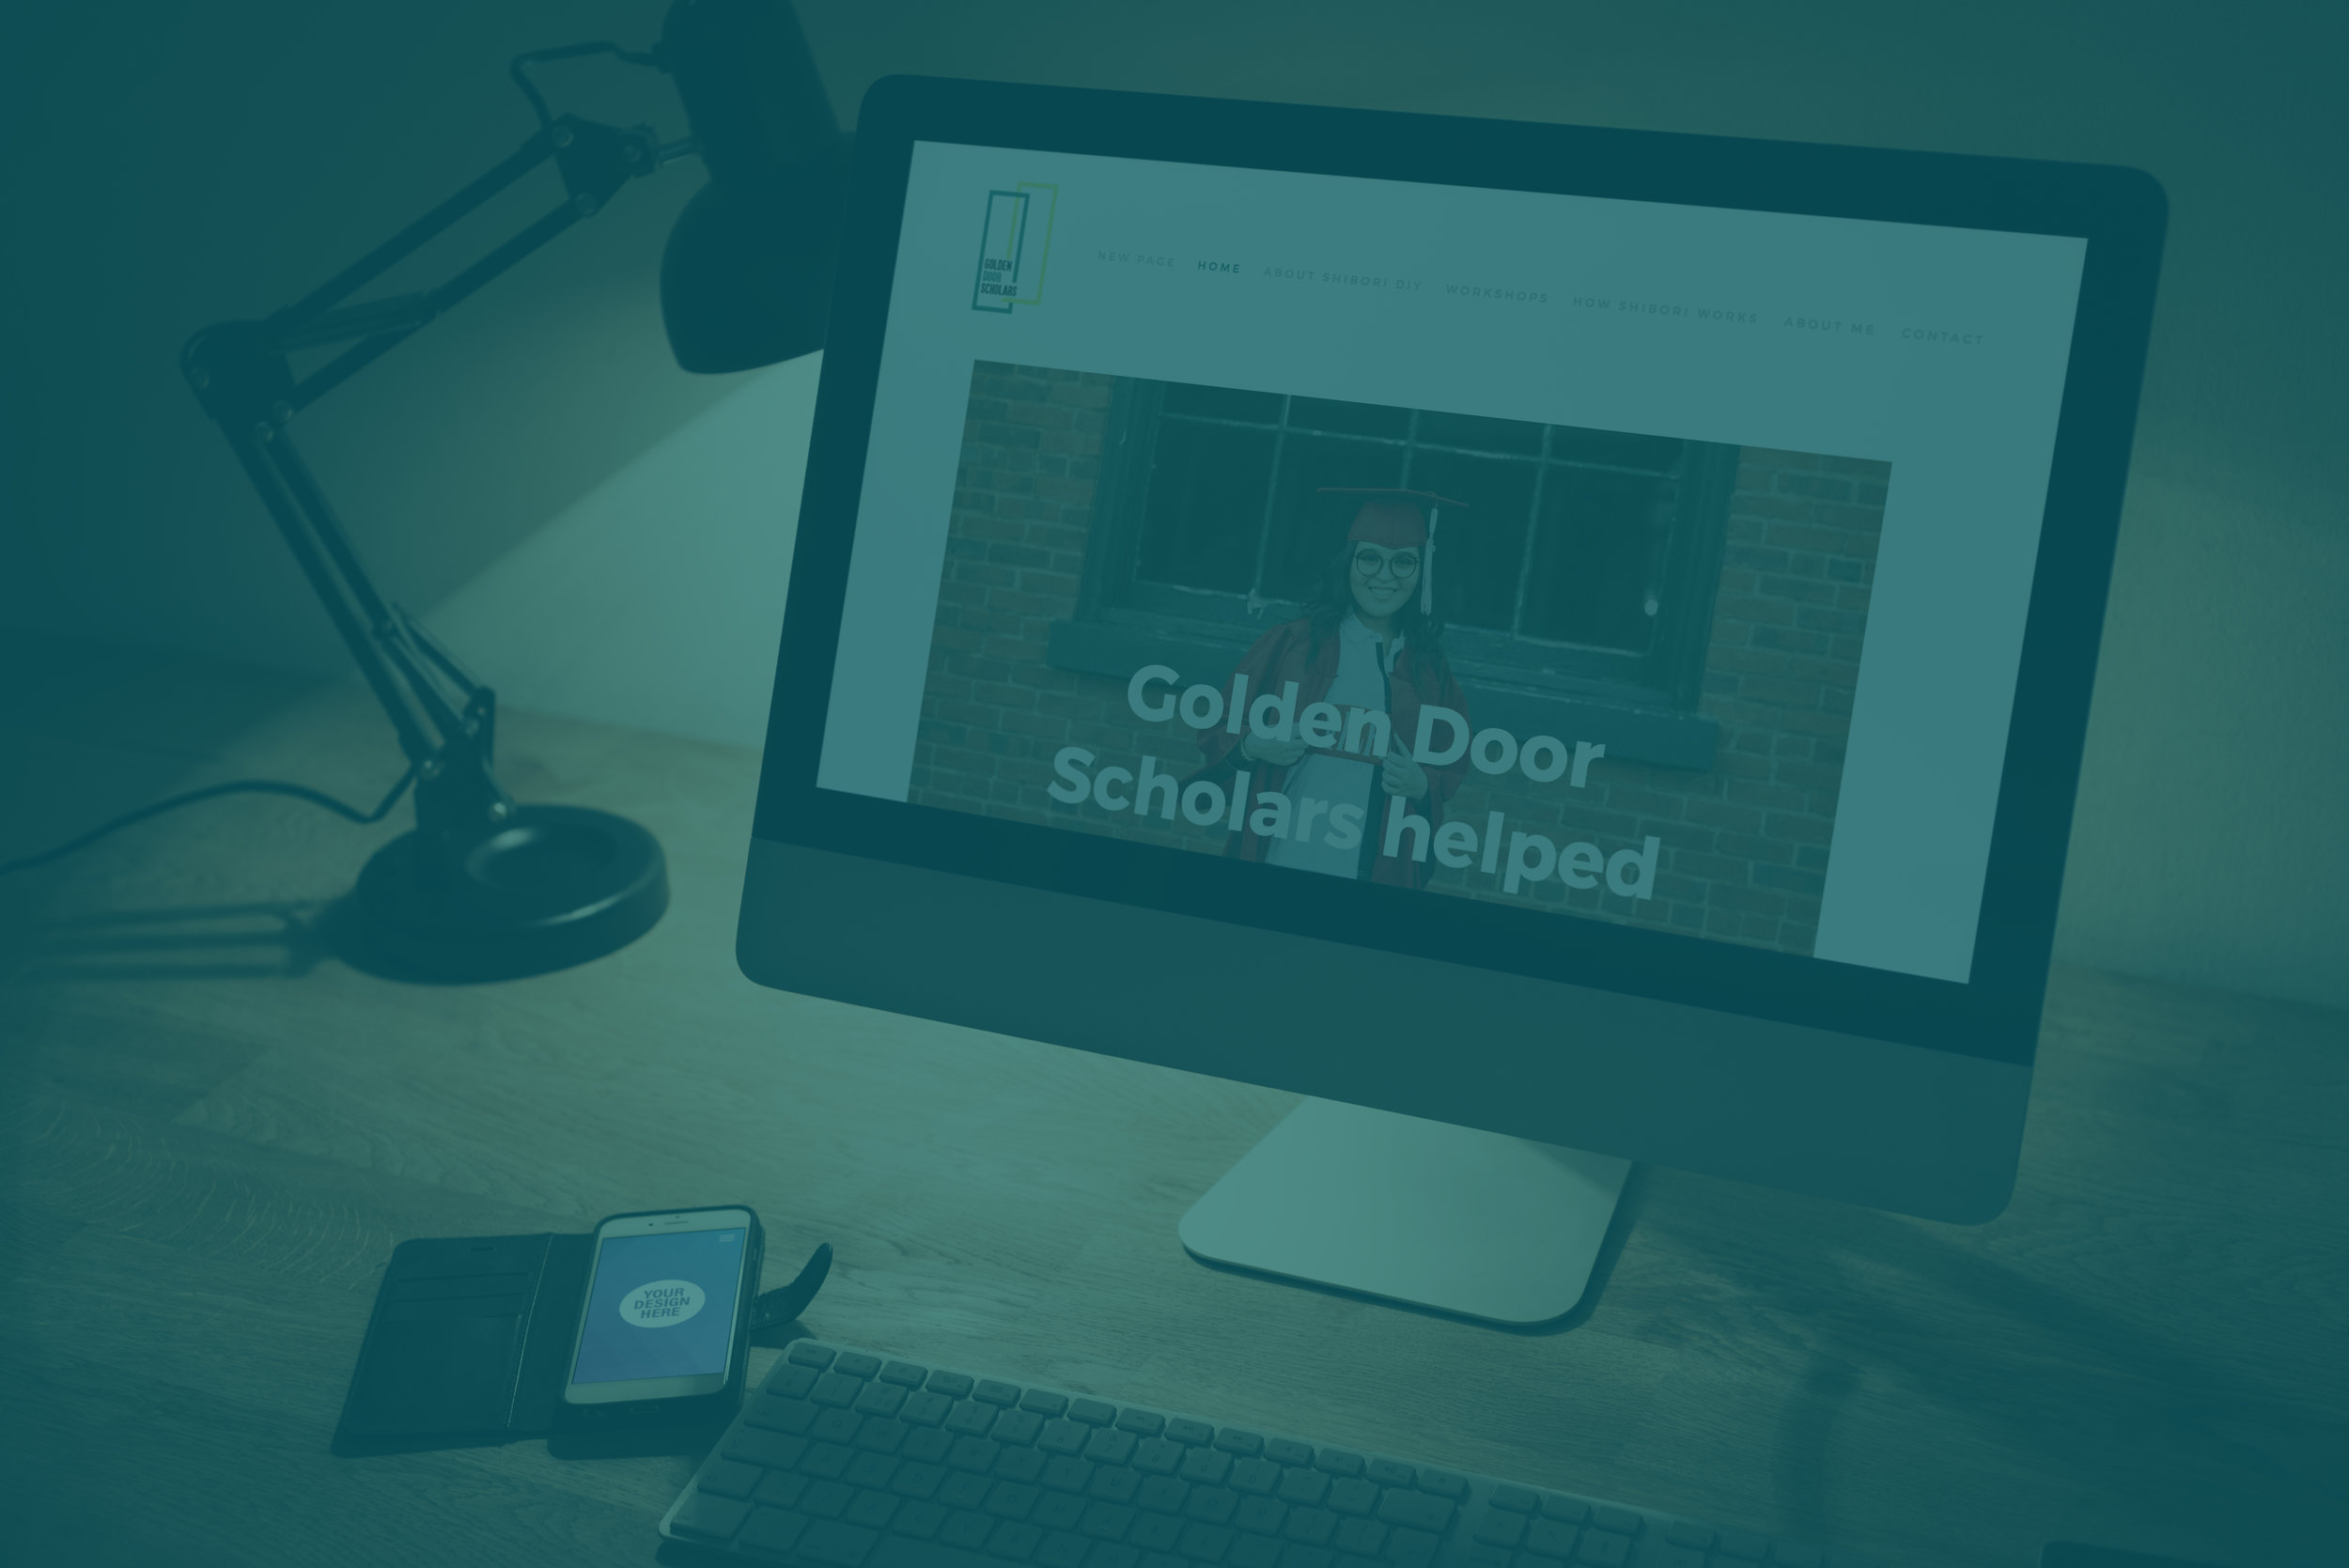 - Golden Door Scholars provides scholarships for DACA students who wish to pursue a career in Computer Science, Tech, Engineering, or a related field.